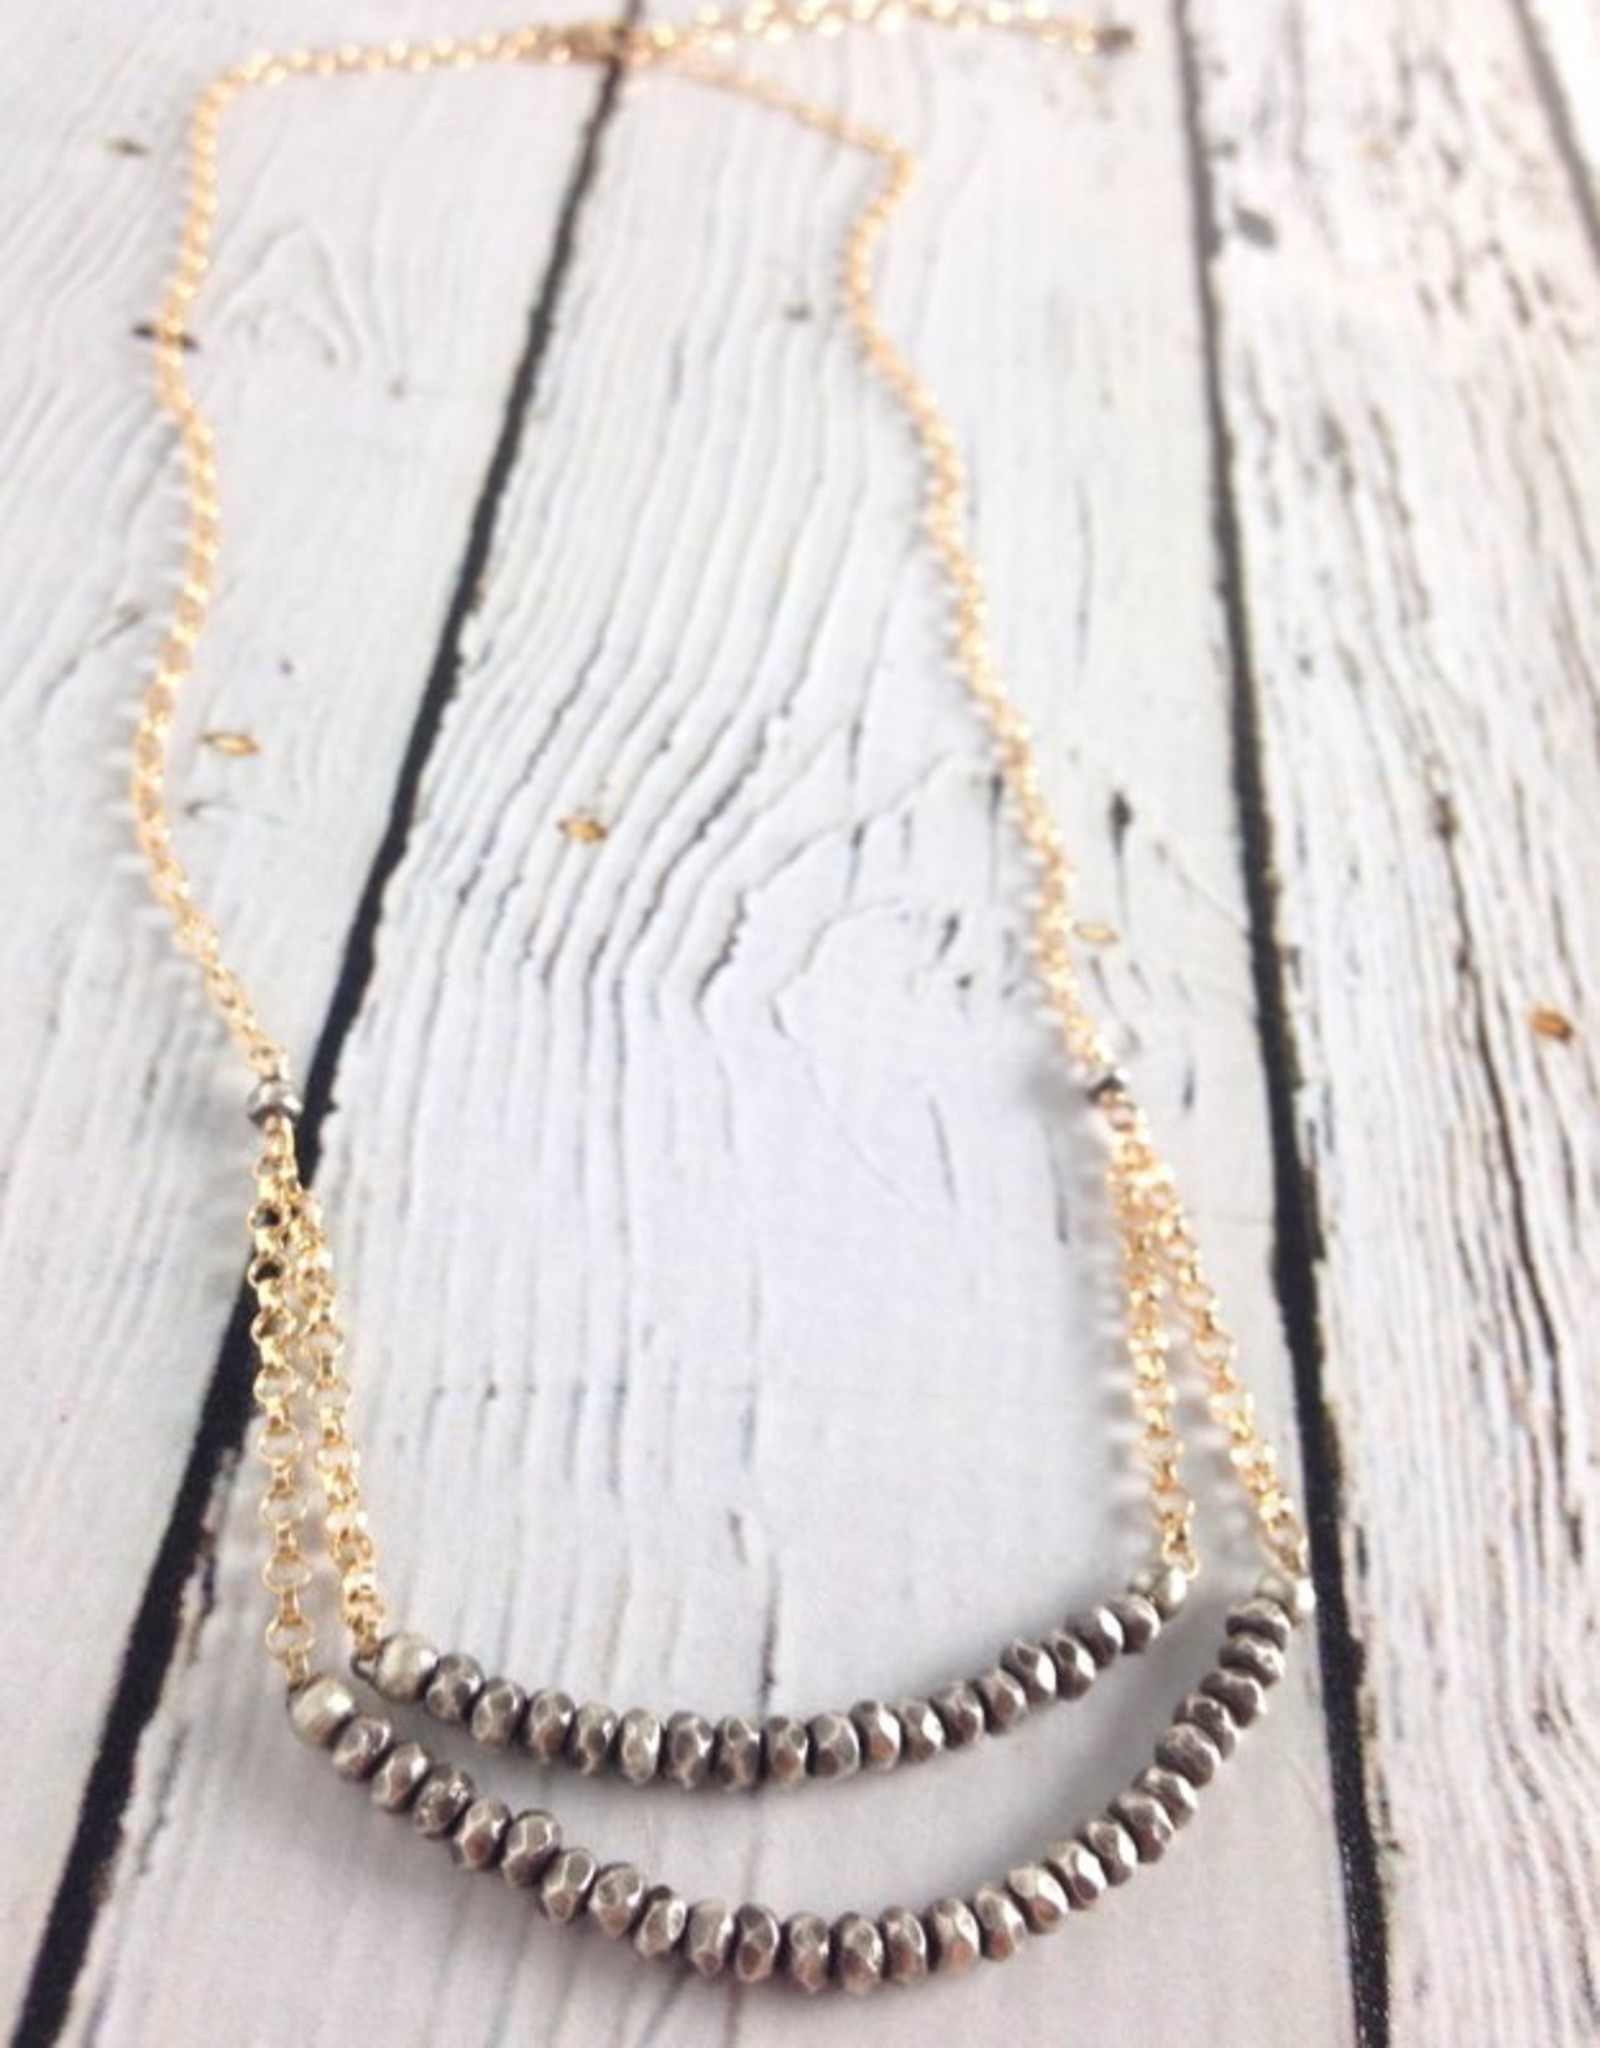 Oxidized Sterling bead and 14kt goldfill Chain Necklace